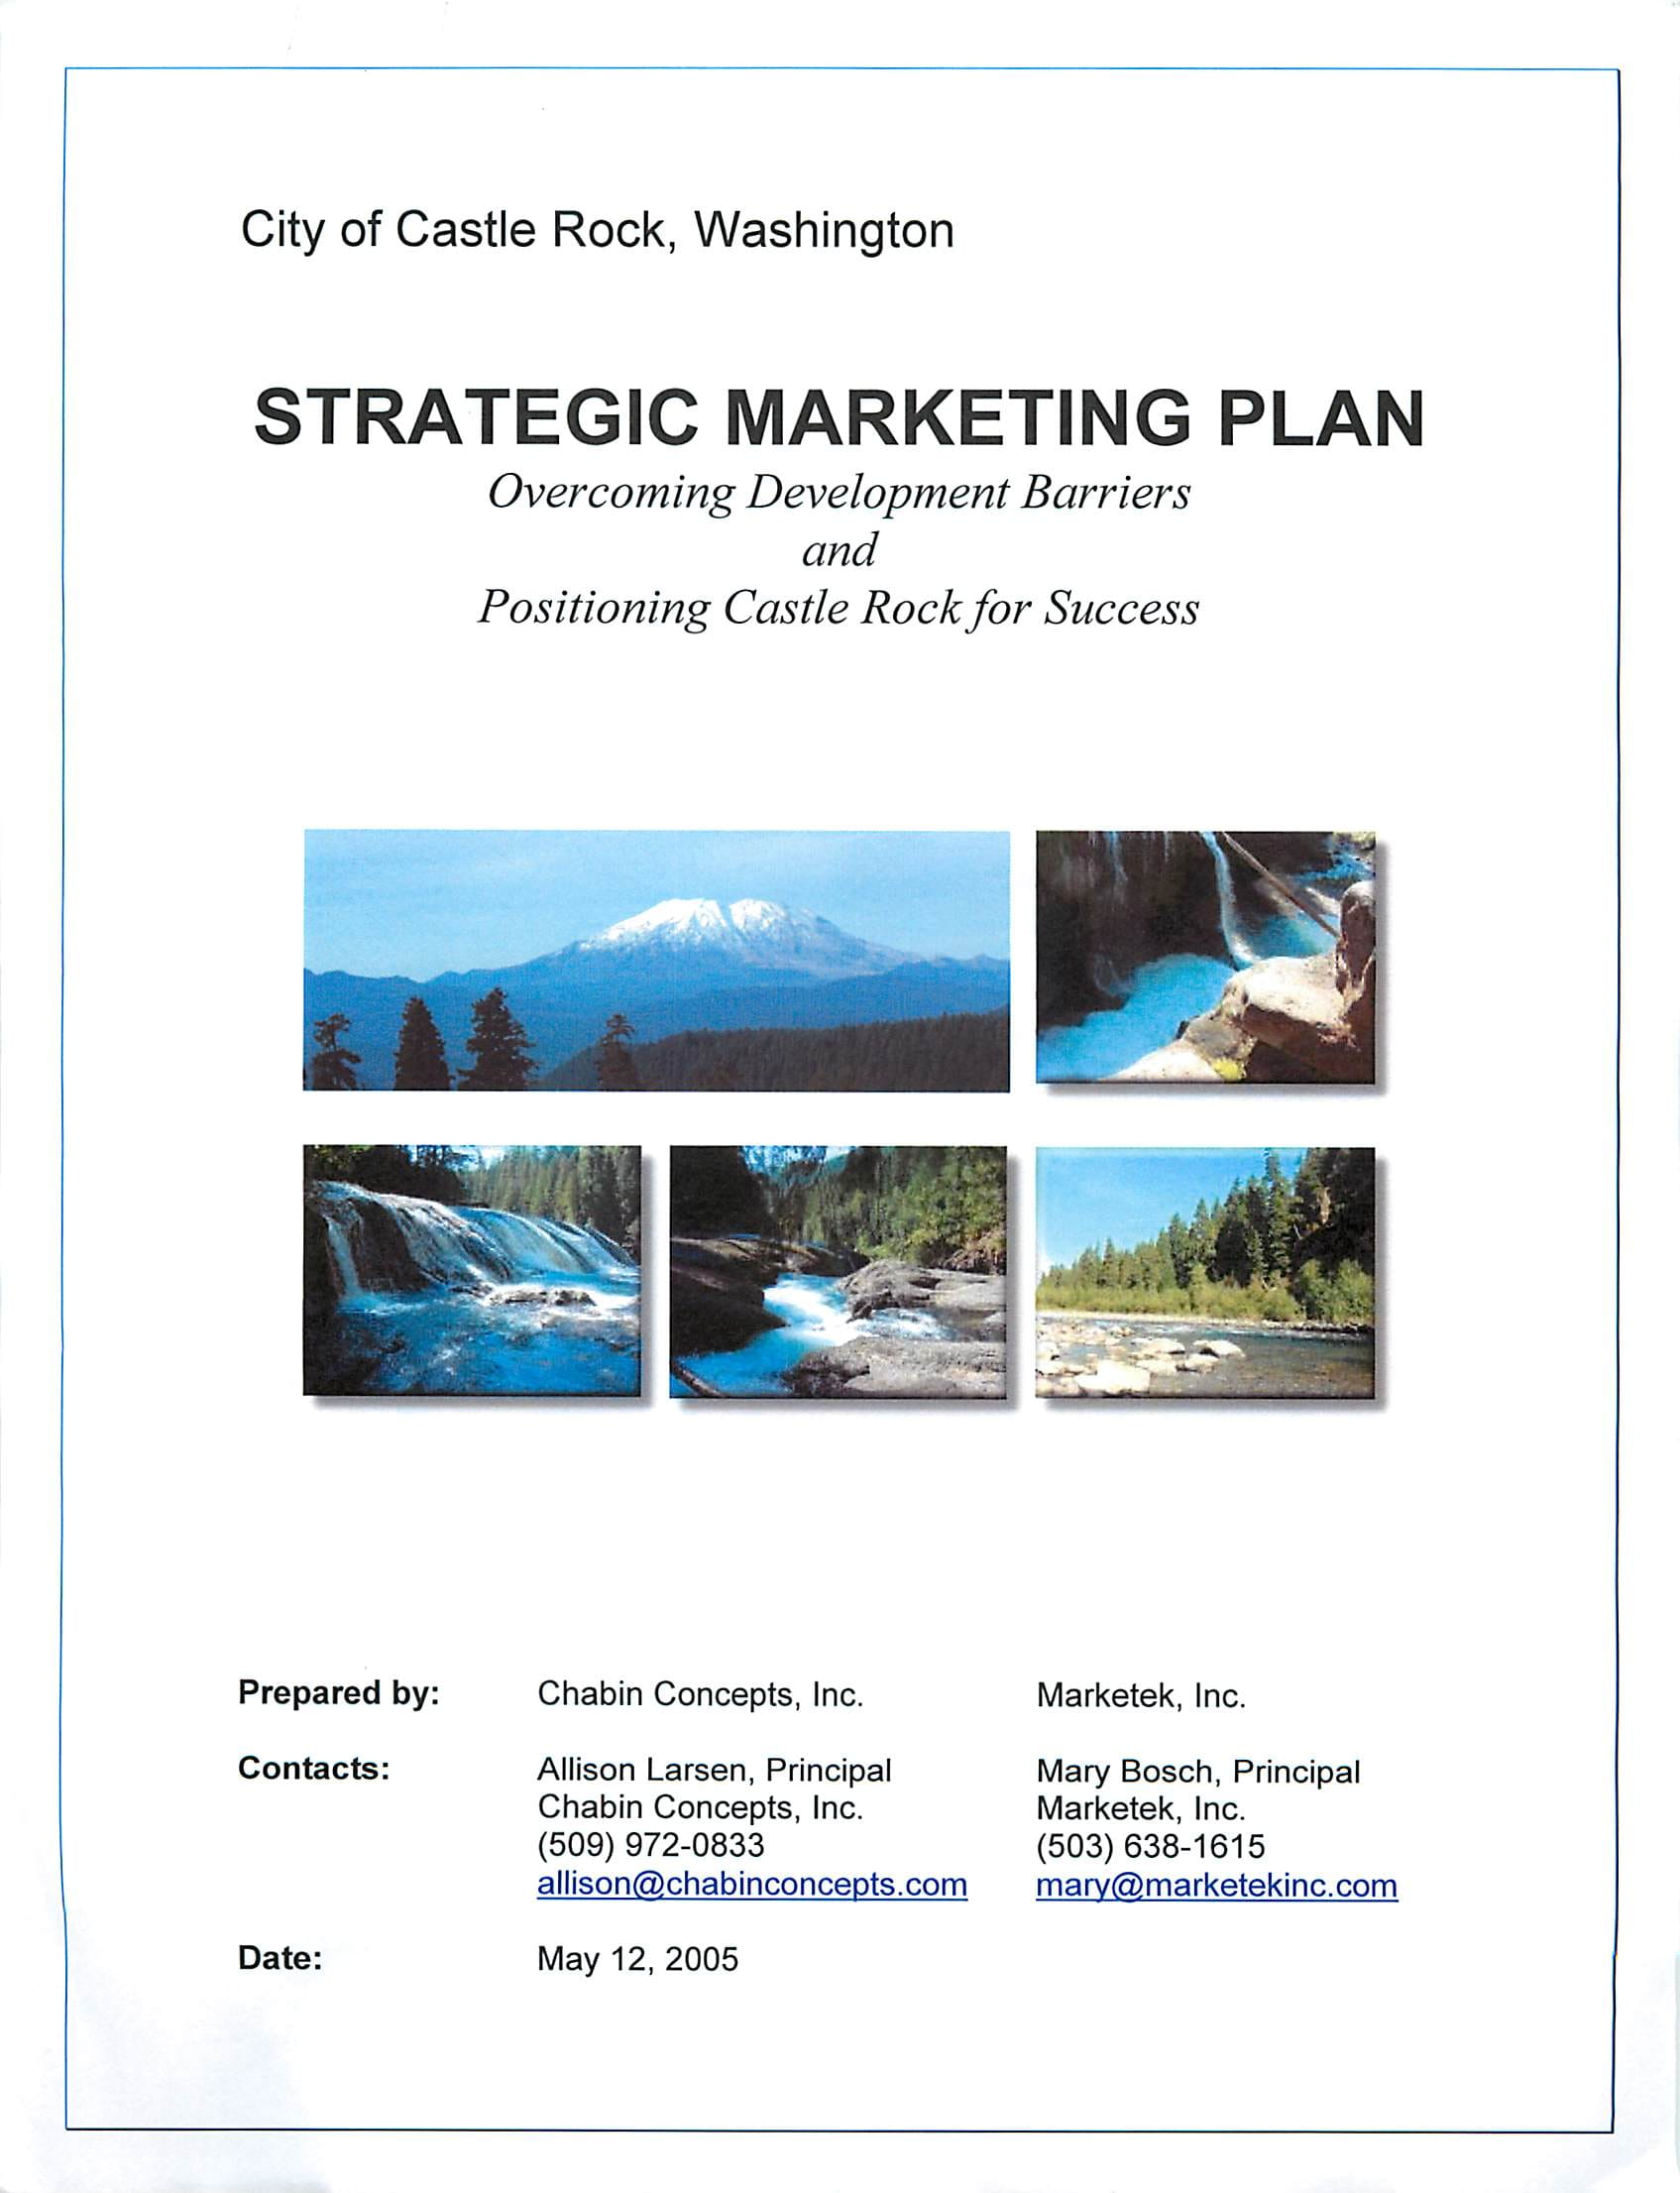 strategic marketing plan for real estate development and market positioning example 01